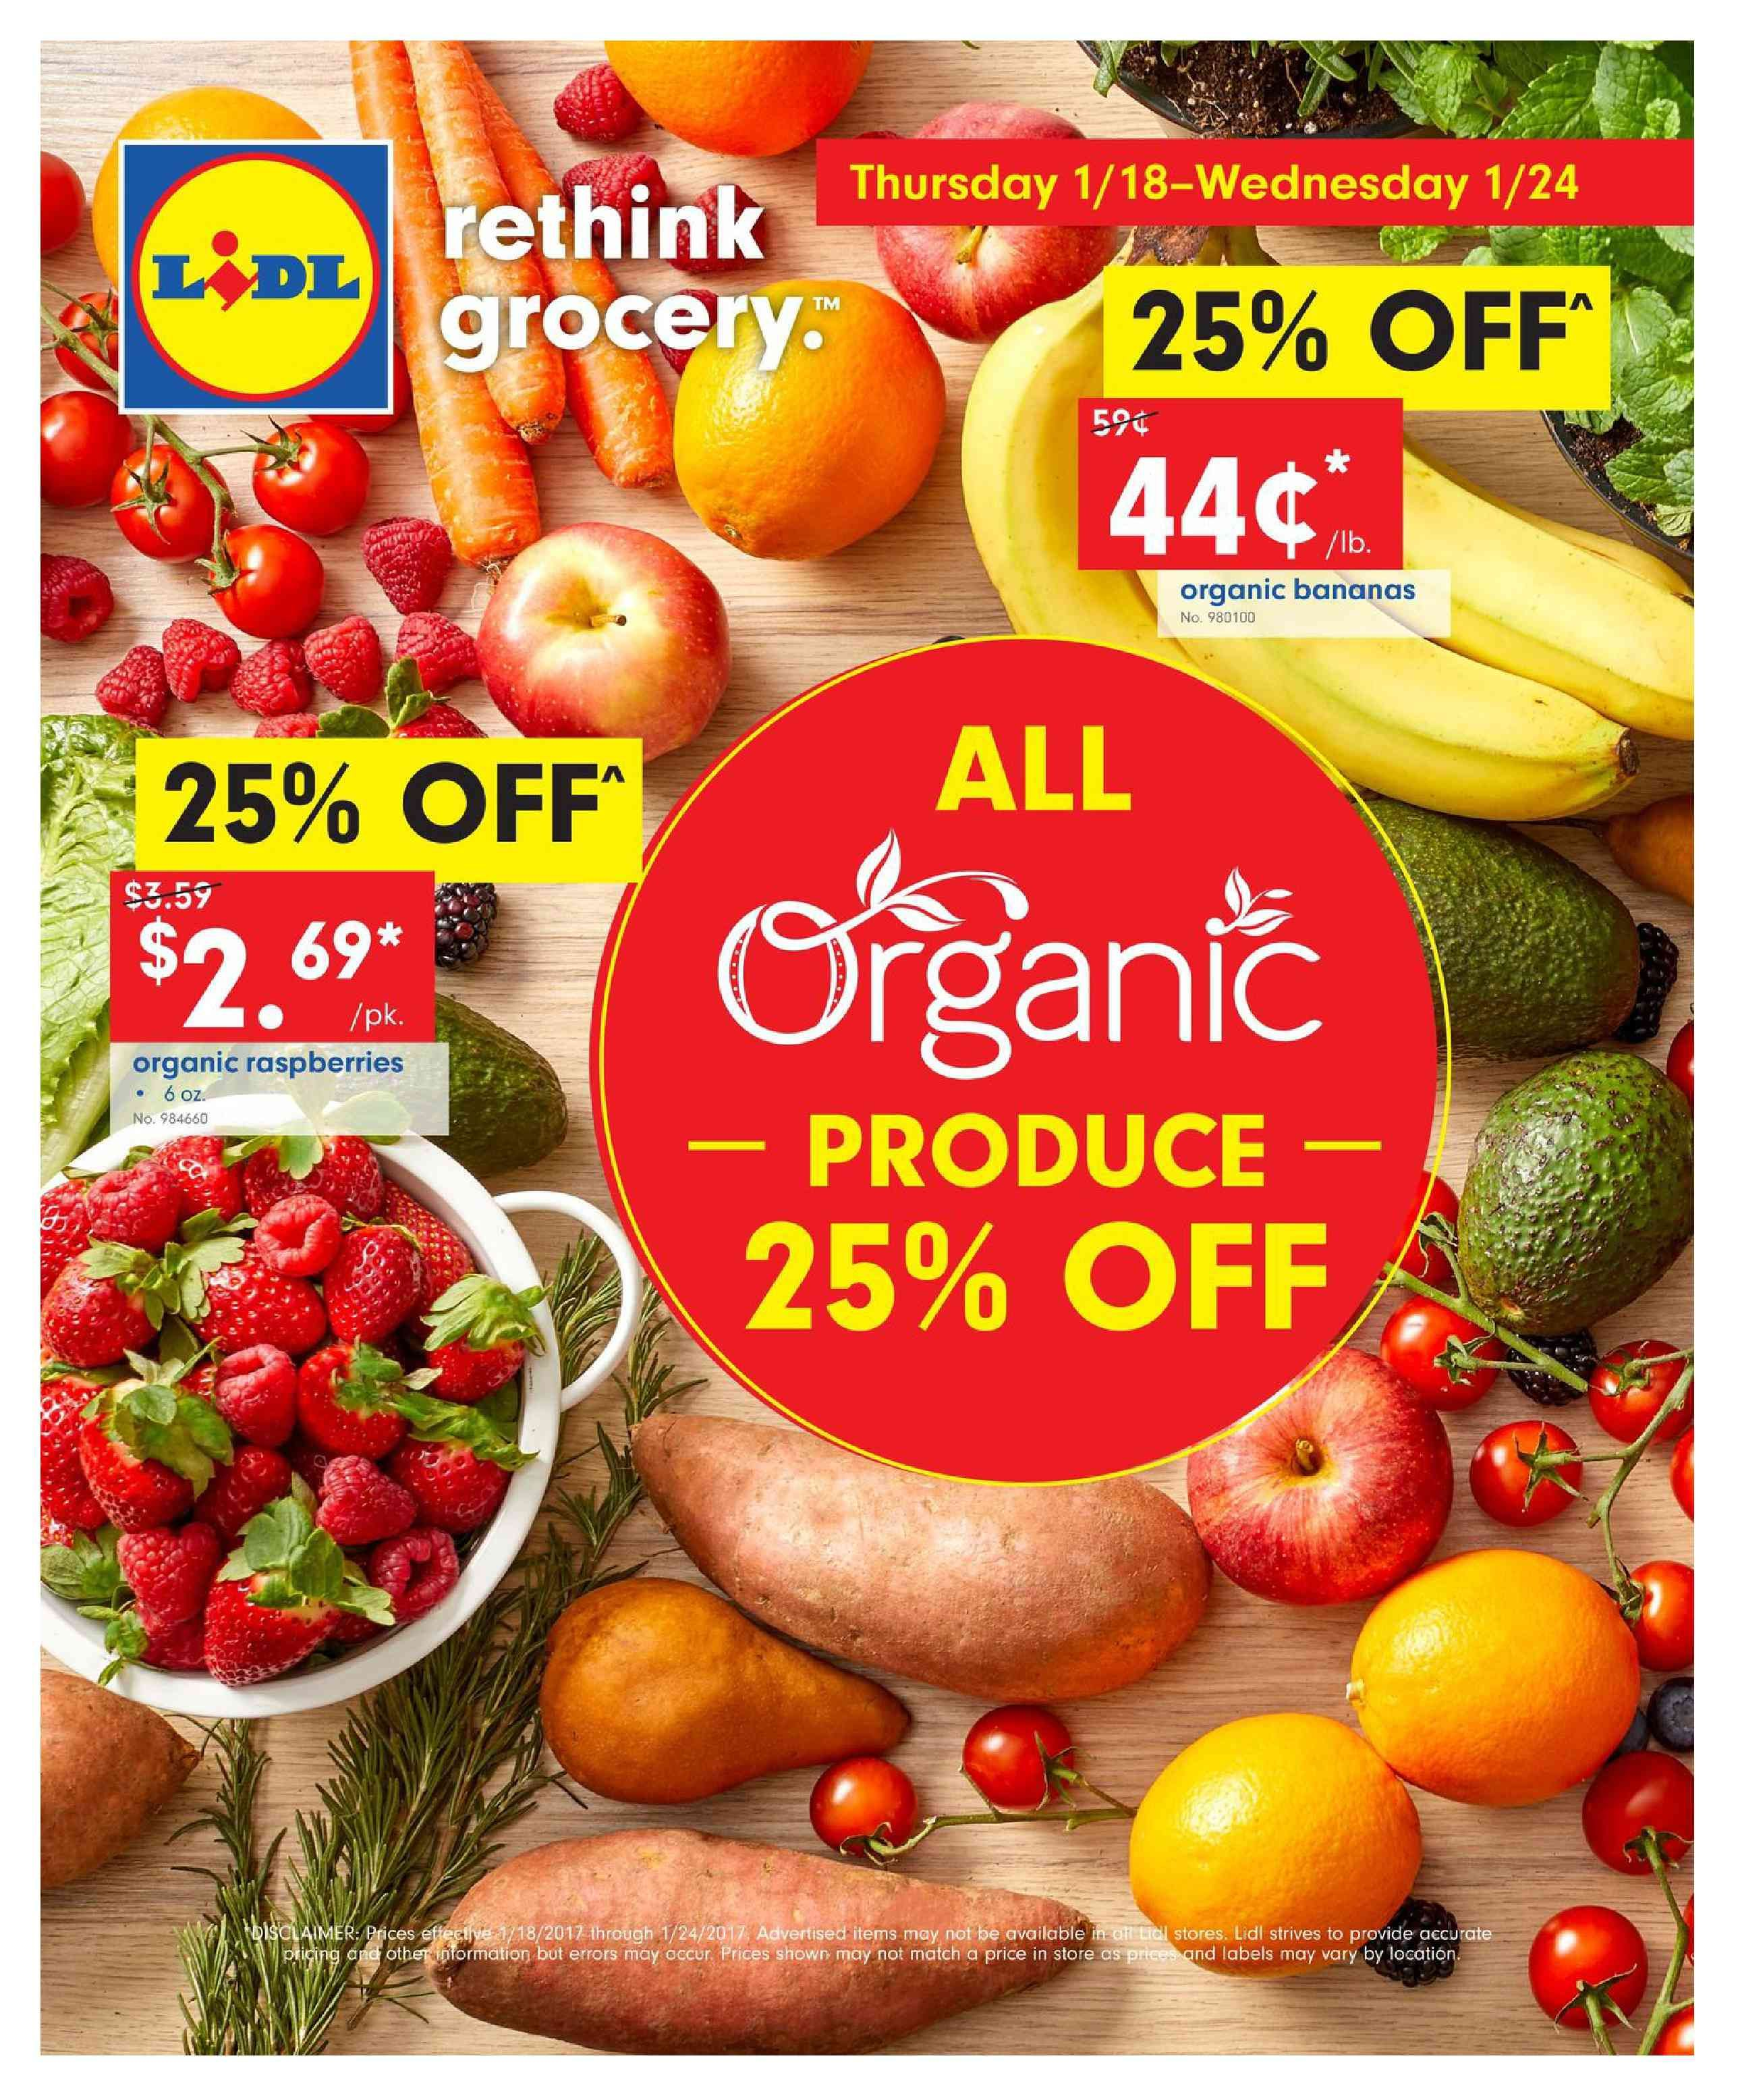 5e589135e Browse current Lidl Weekly ad January 18 – 24, 2018 or Weekly specials, Lidl